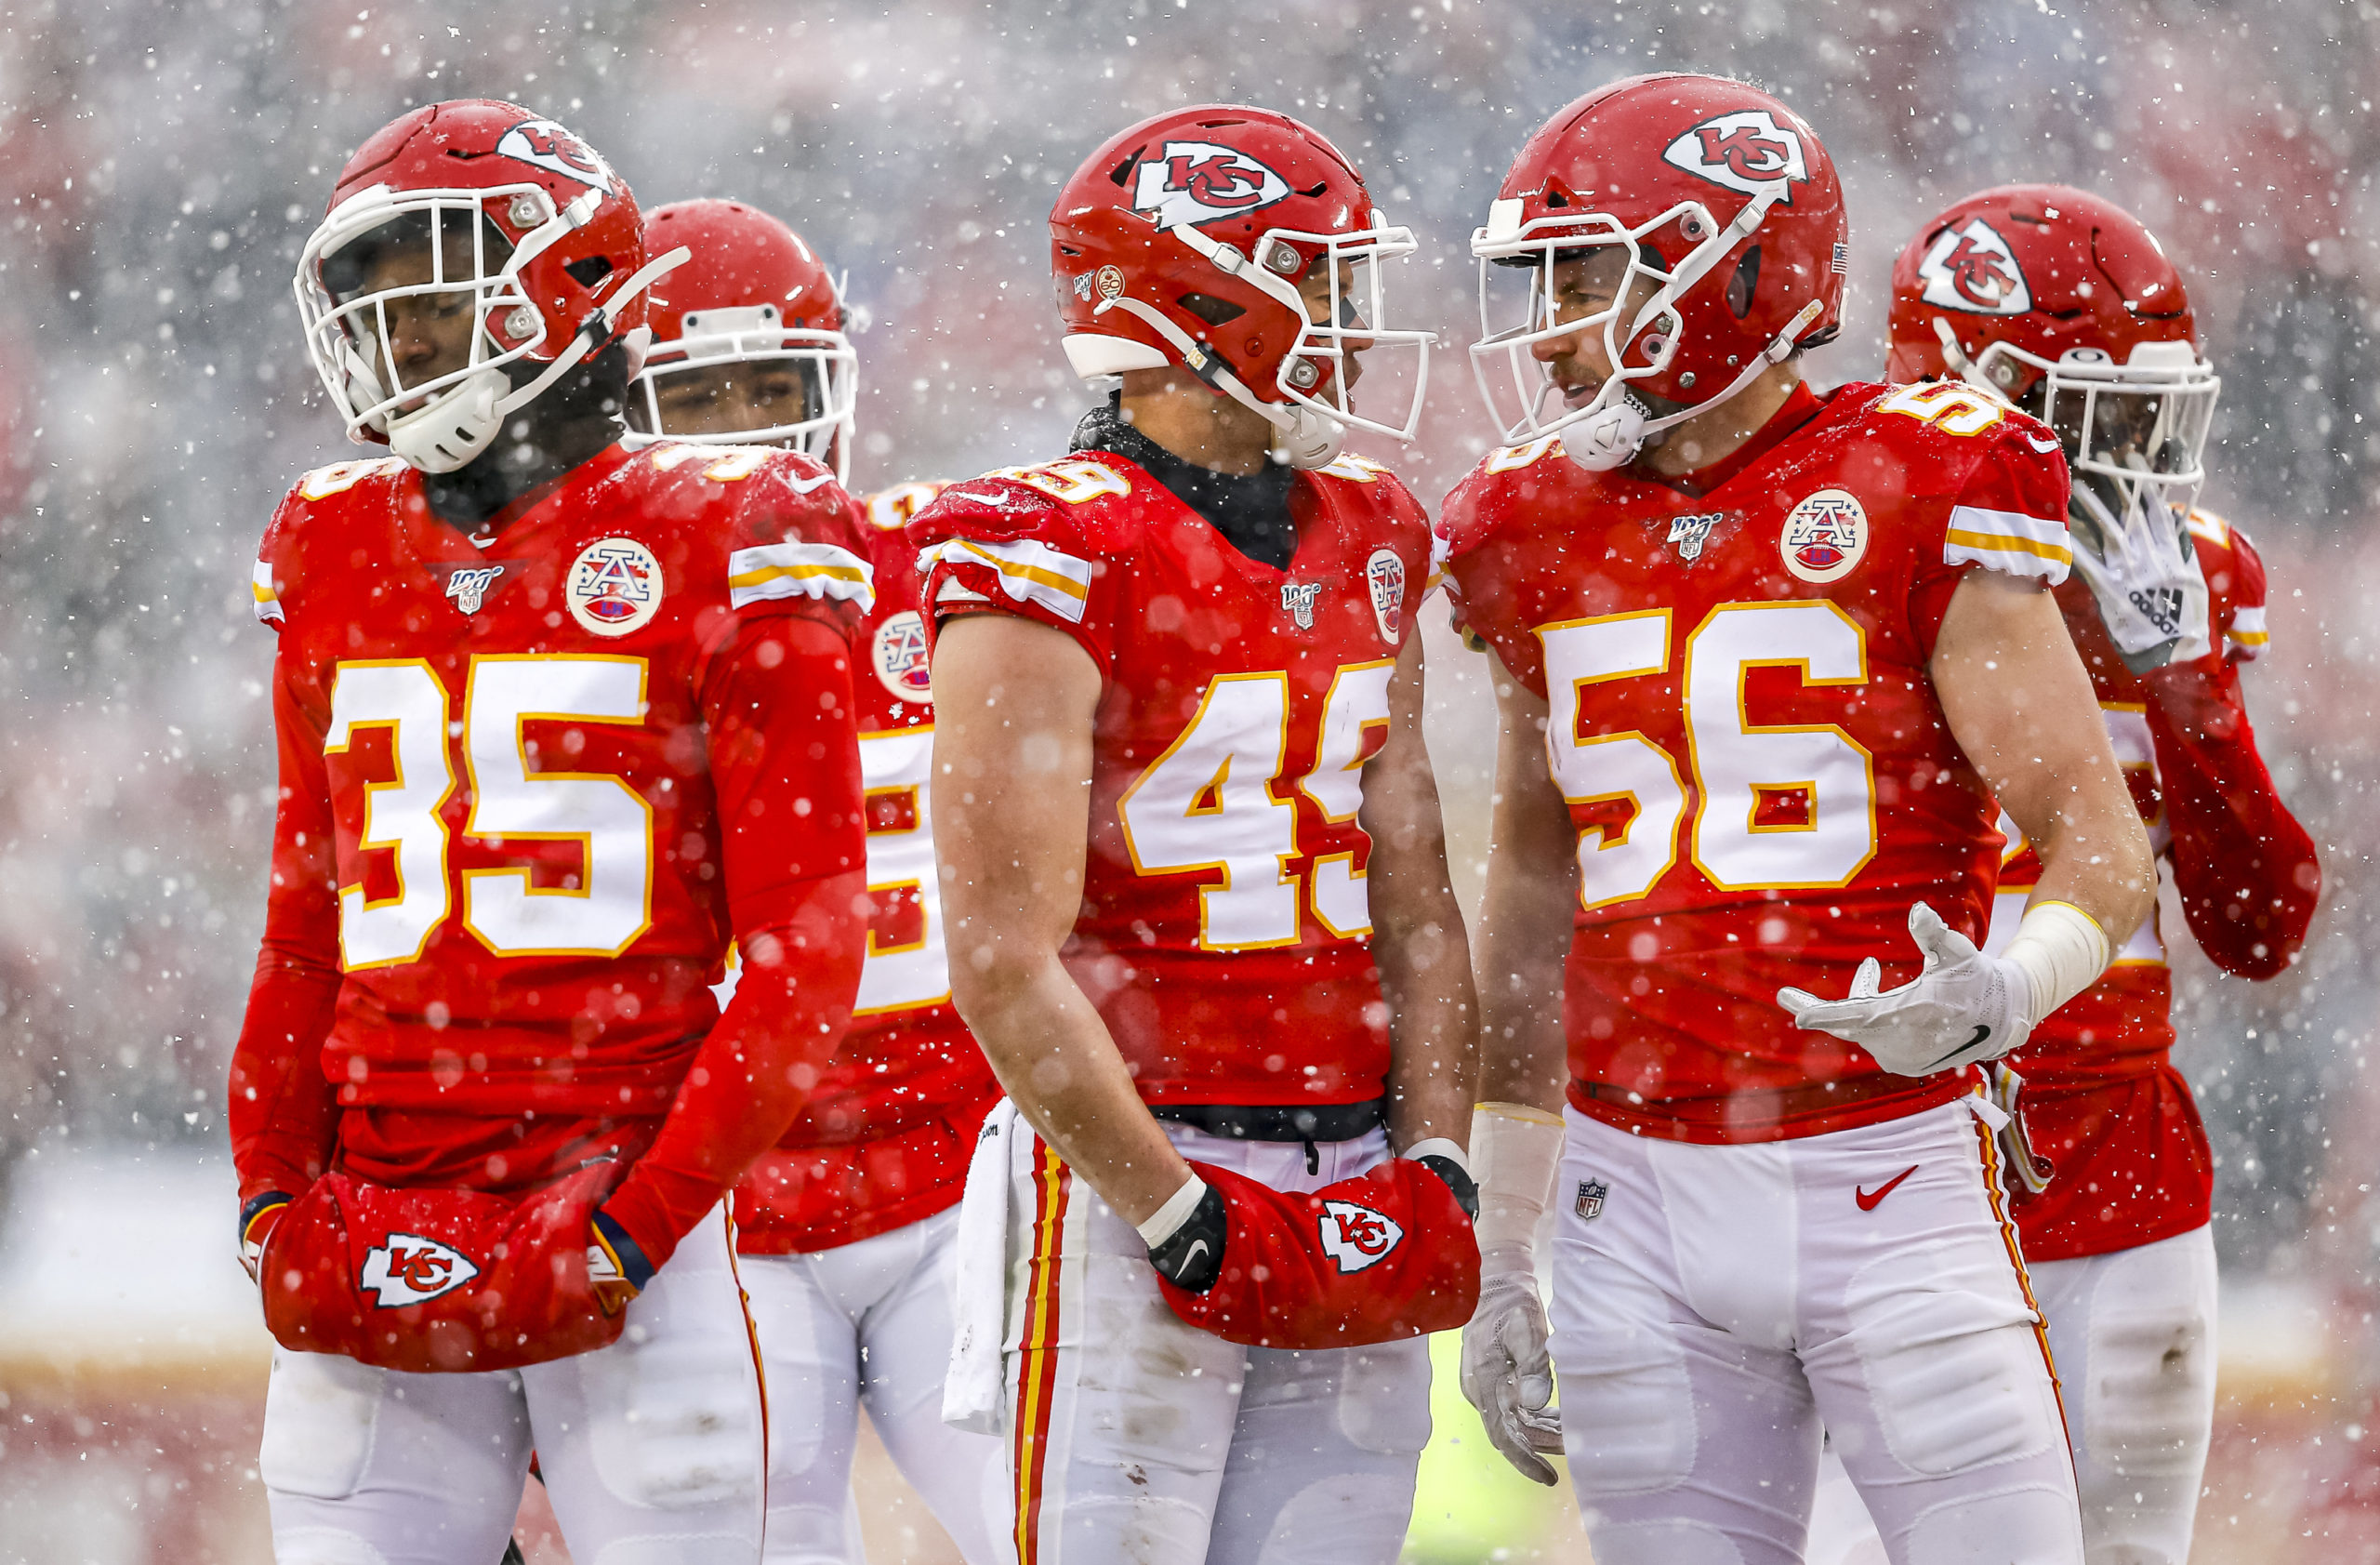 Chiefs Take Commanding Lead in Super Bowl Odds